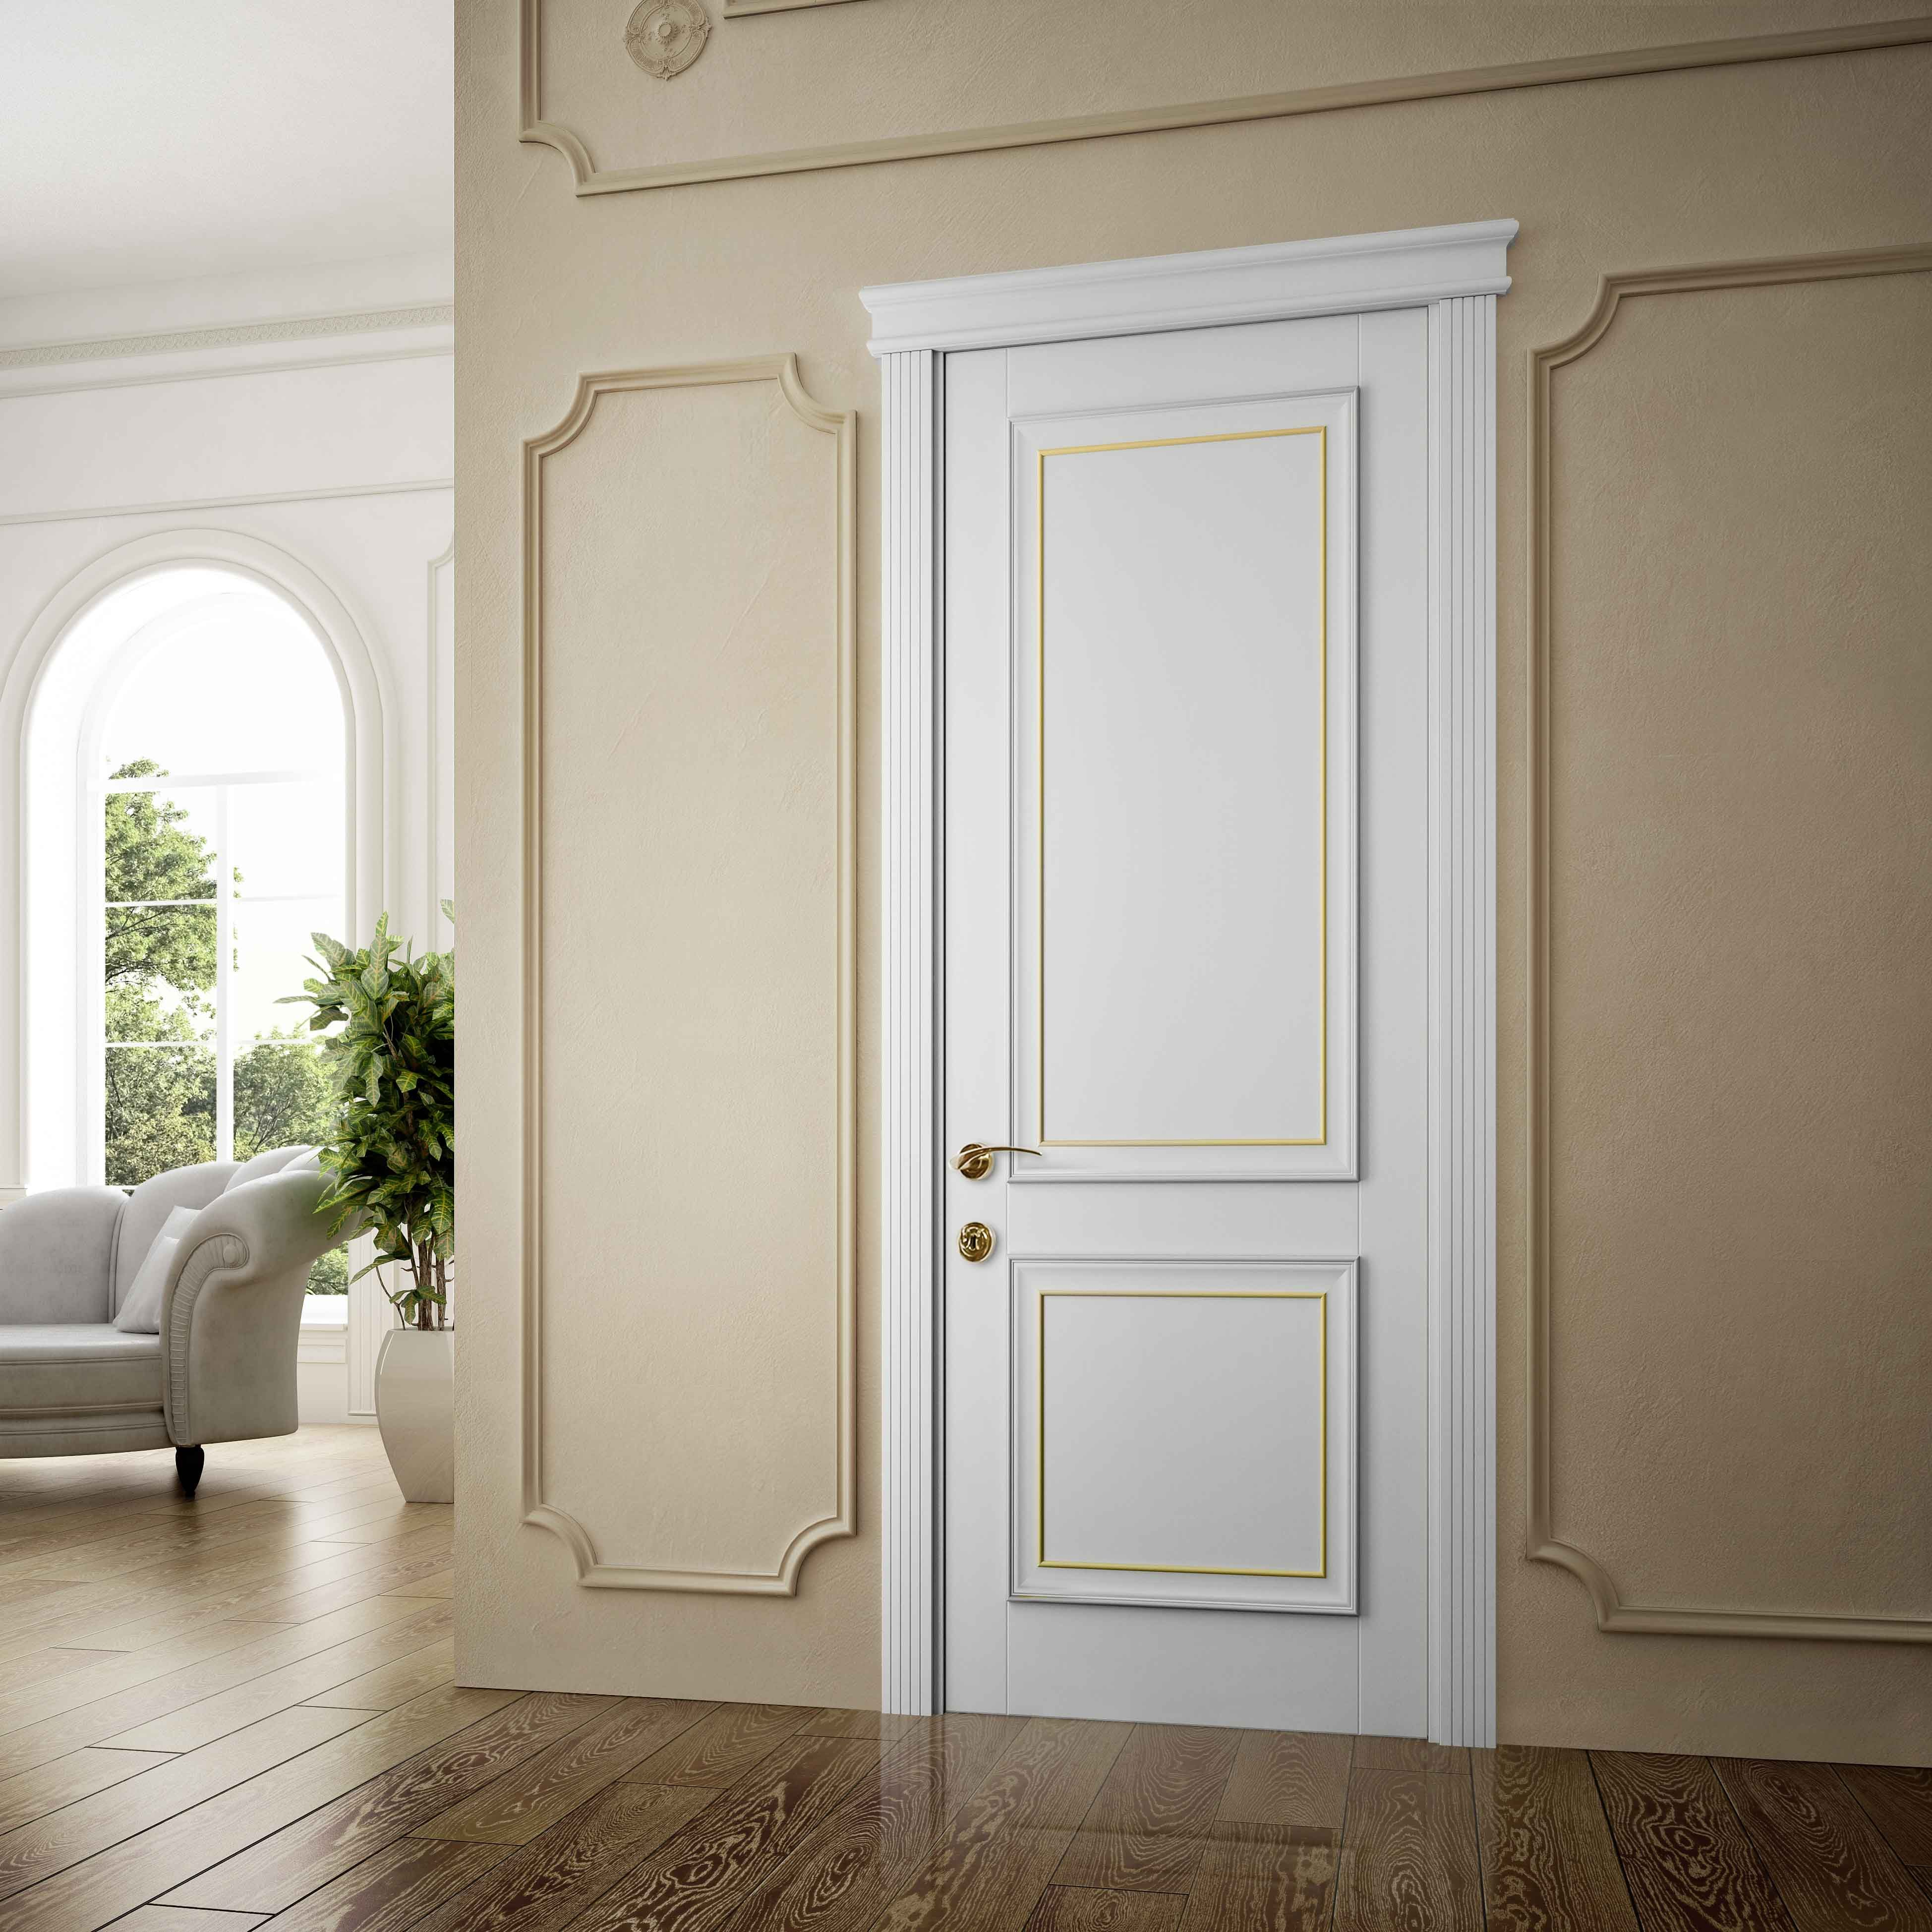 Classic Door Design classic doors design Classic Door Italian Classic Door Wooden Door Catia Collection By Romagnoli Made